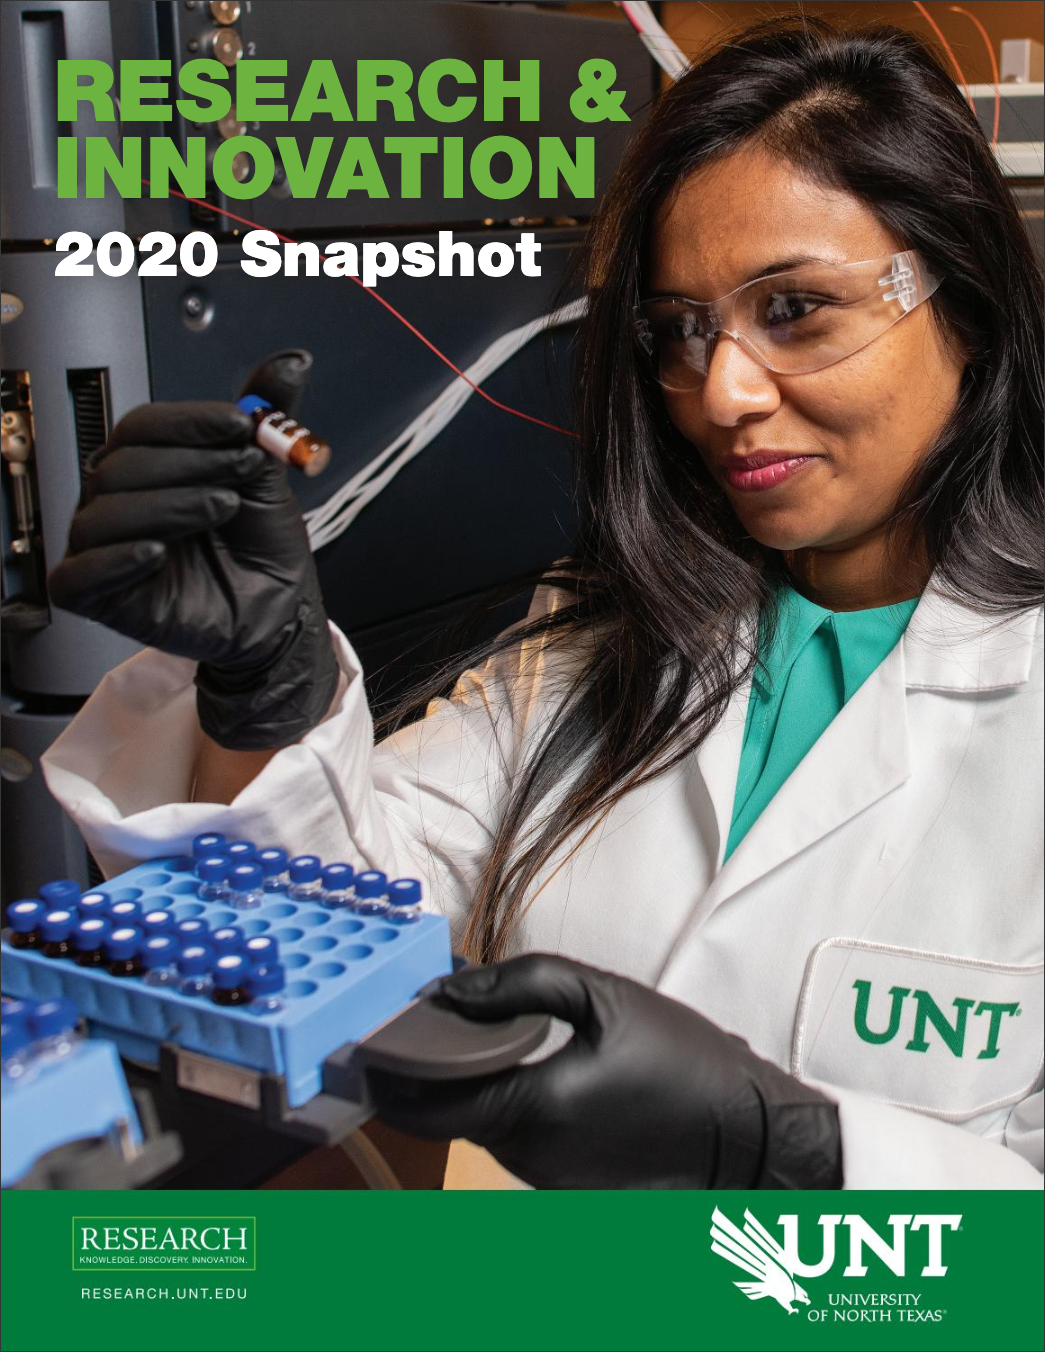 Research snapshot 2020